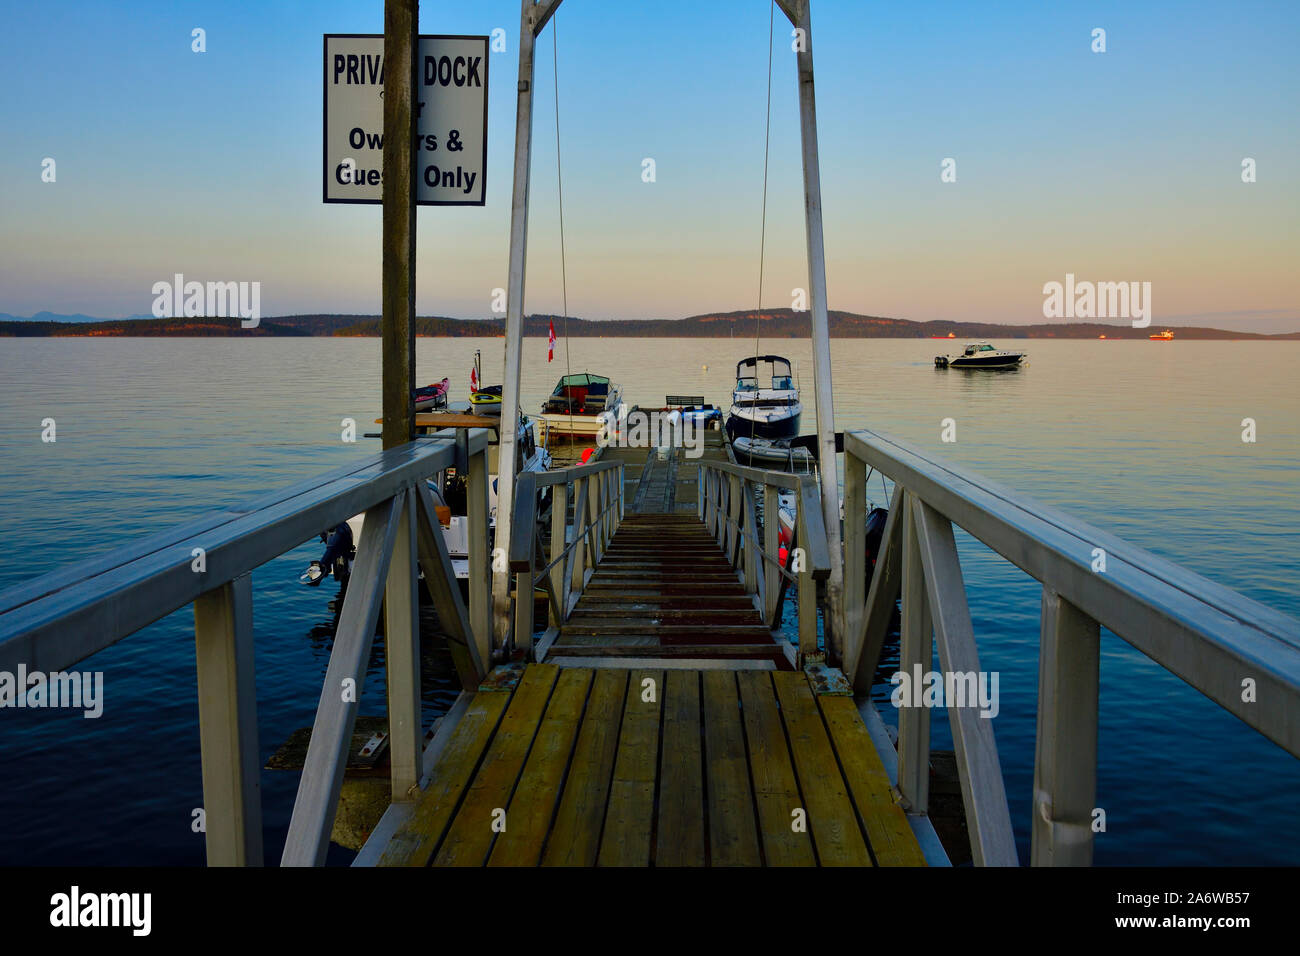 A boat dock jutting out into the Stewart Channel loaded with pleasure craft on a calm summer evening on Vancouver Island British Columbia Canada. Stock Photo